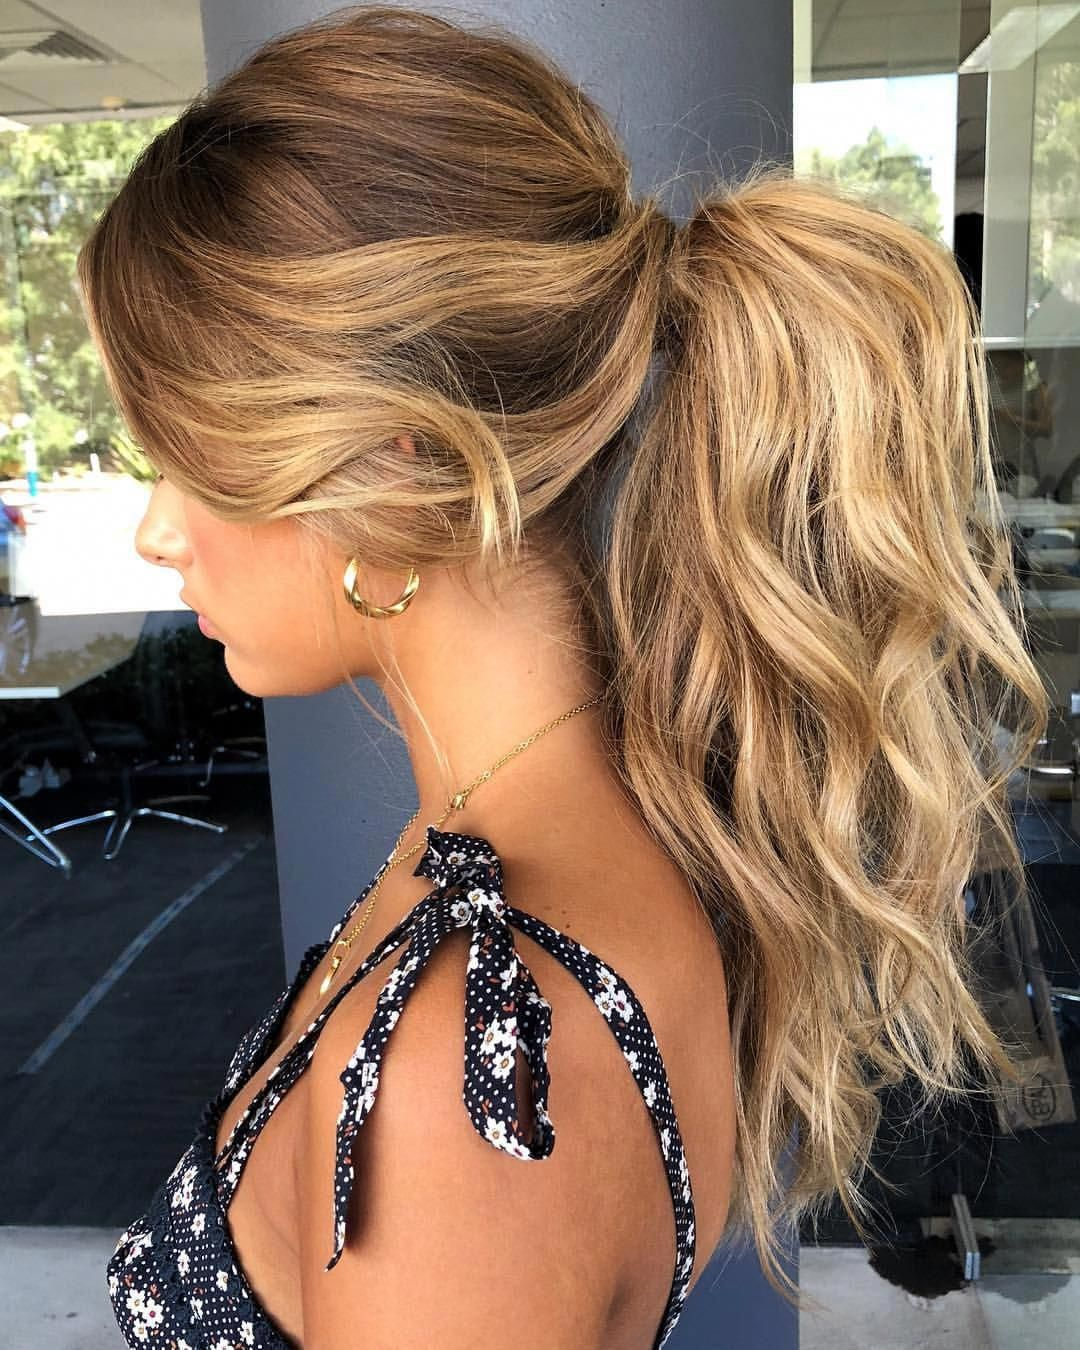 Simple easy prom hairstyles #easypromhairstyles | Beautiful Prom Hairstyles | Prom hair, Prom ...